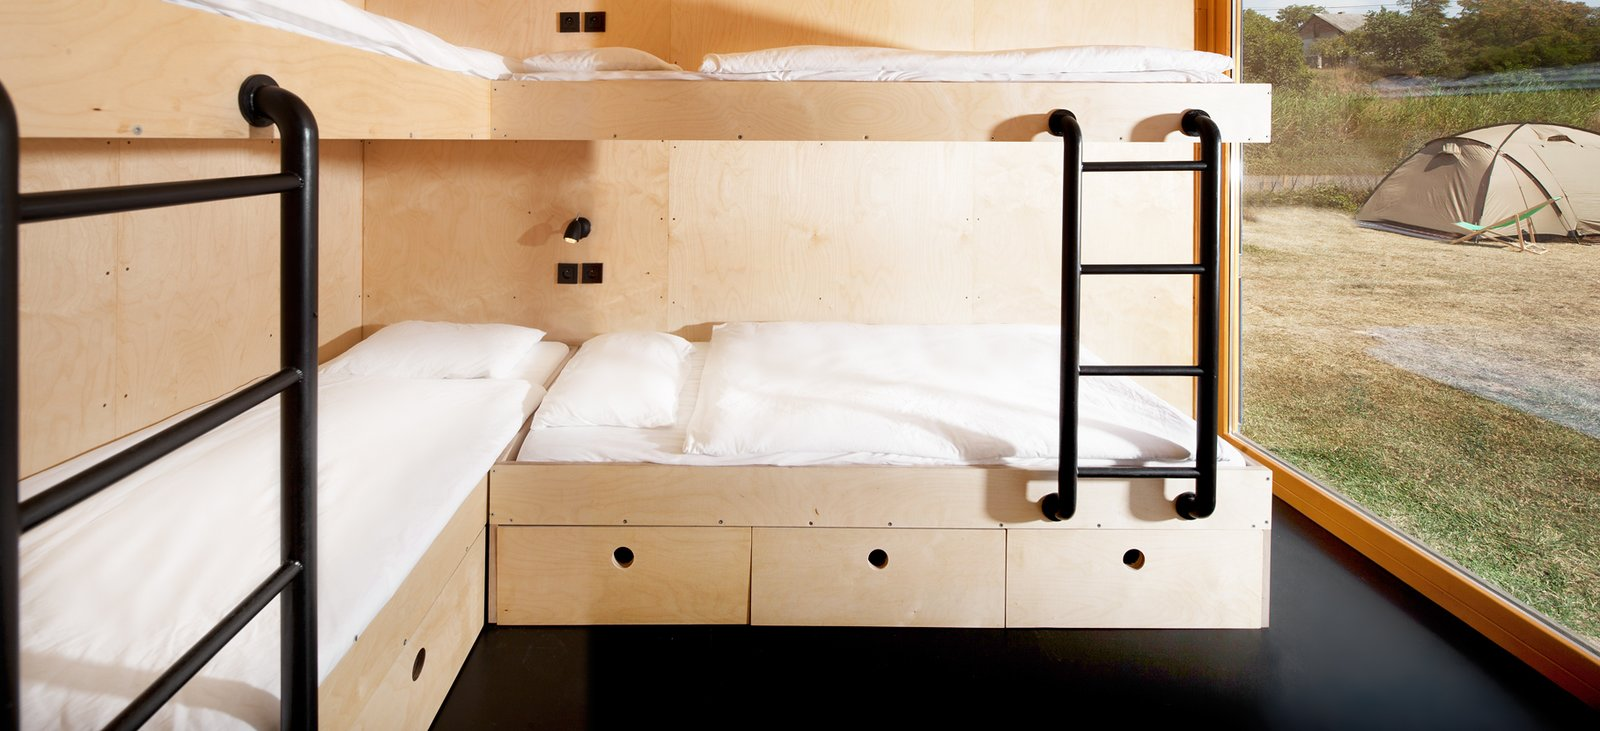 Bedroom, Bunks, Storage, and Linoleum Floor  Photo 10 of 15 in A Mobile Boutique Hotel For the Modern Traveler Made From Shipping Containers